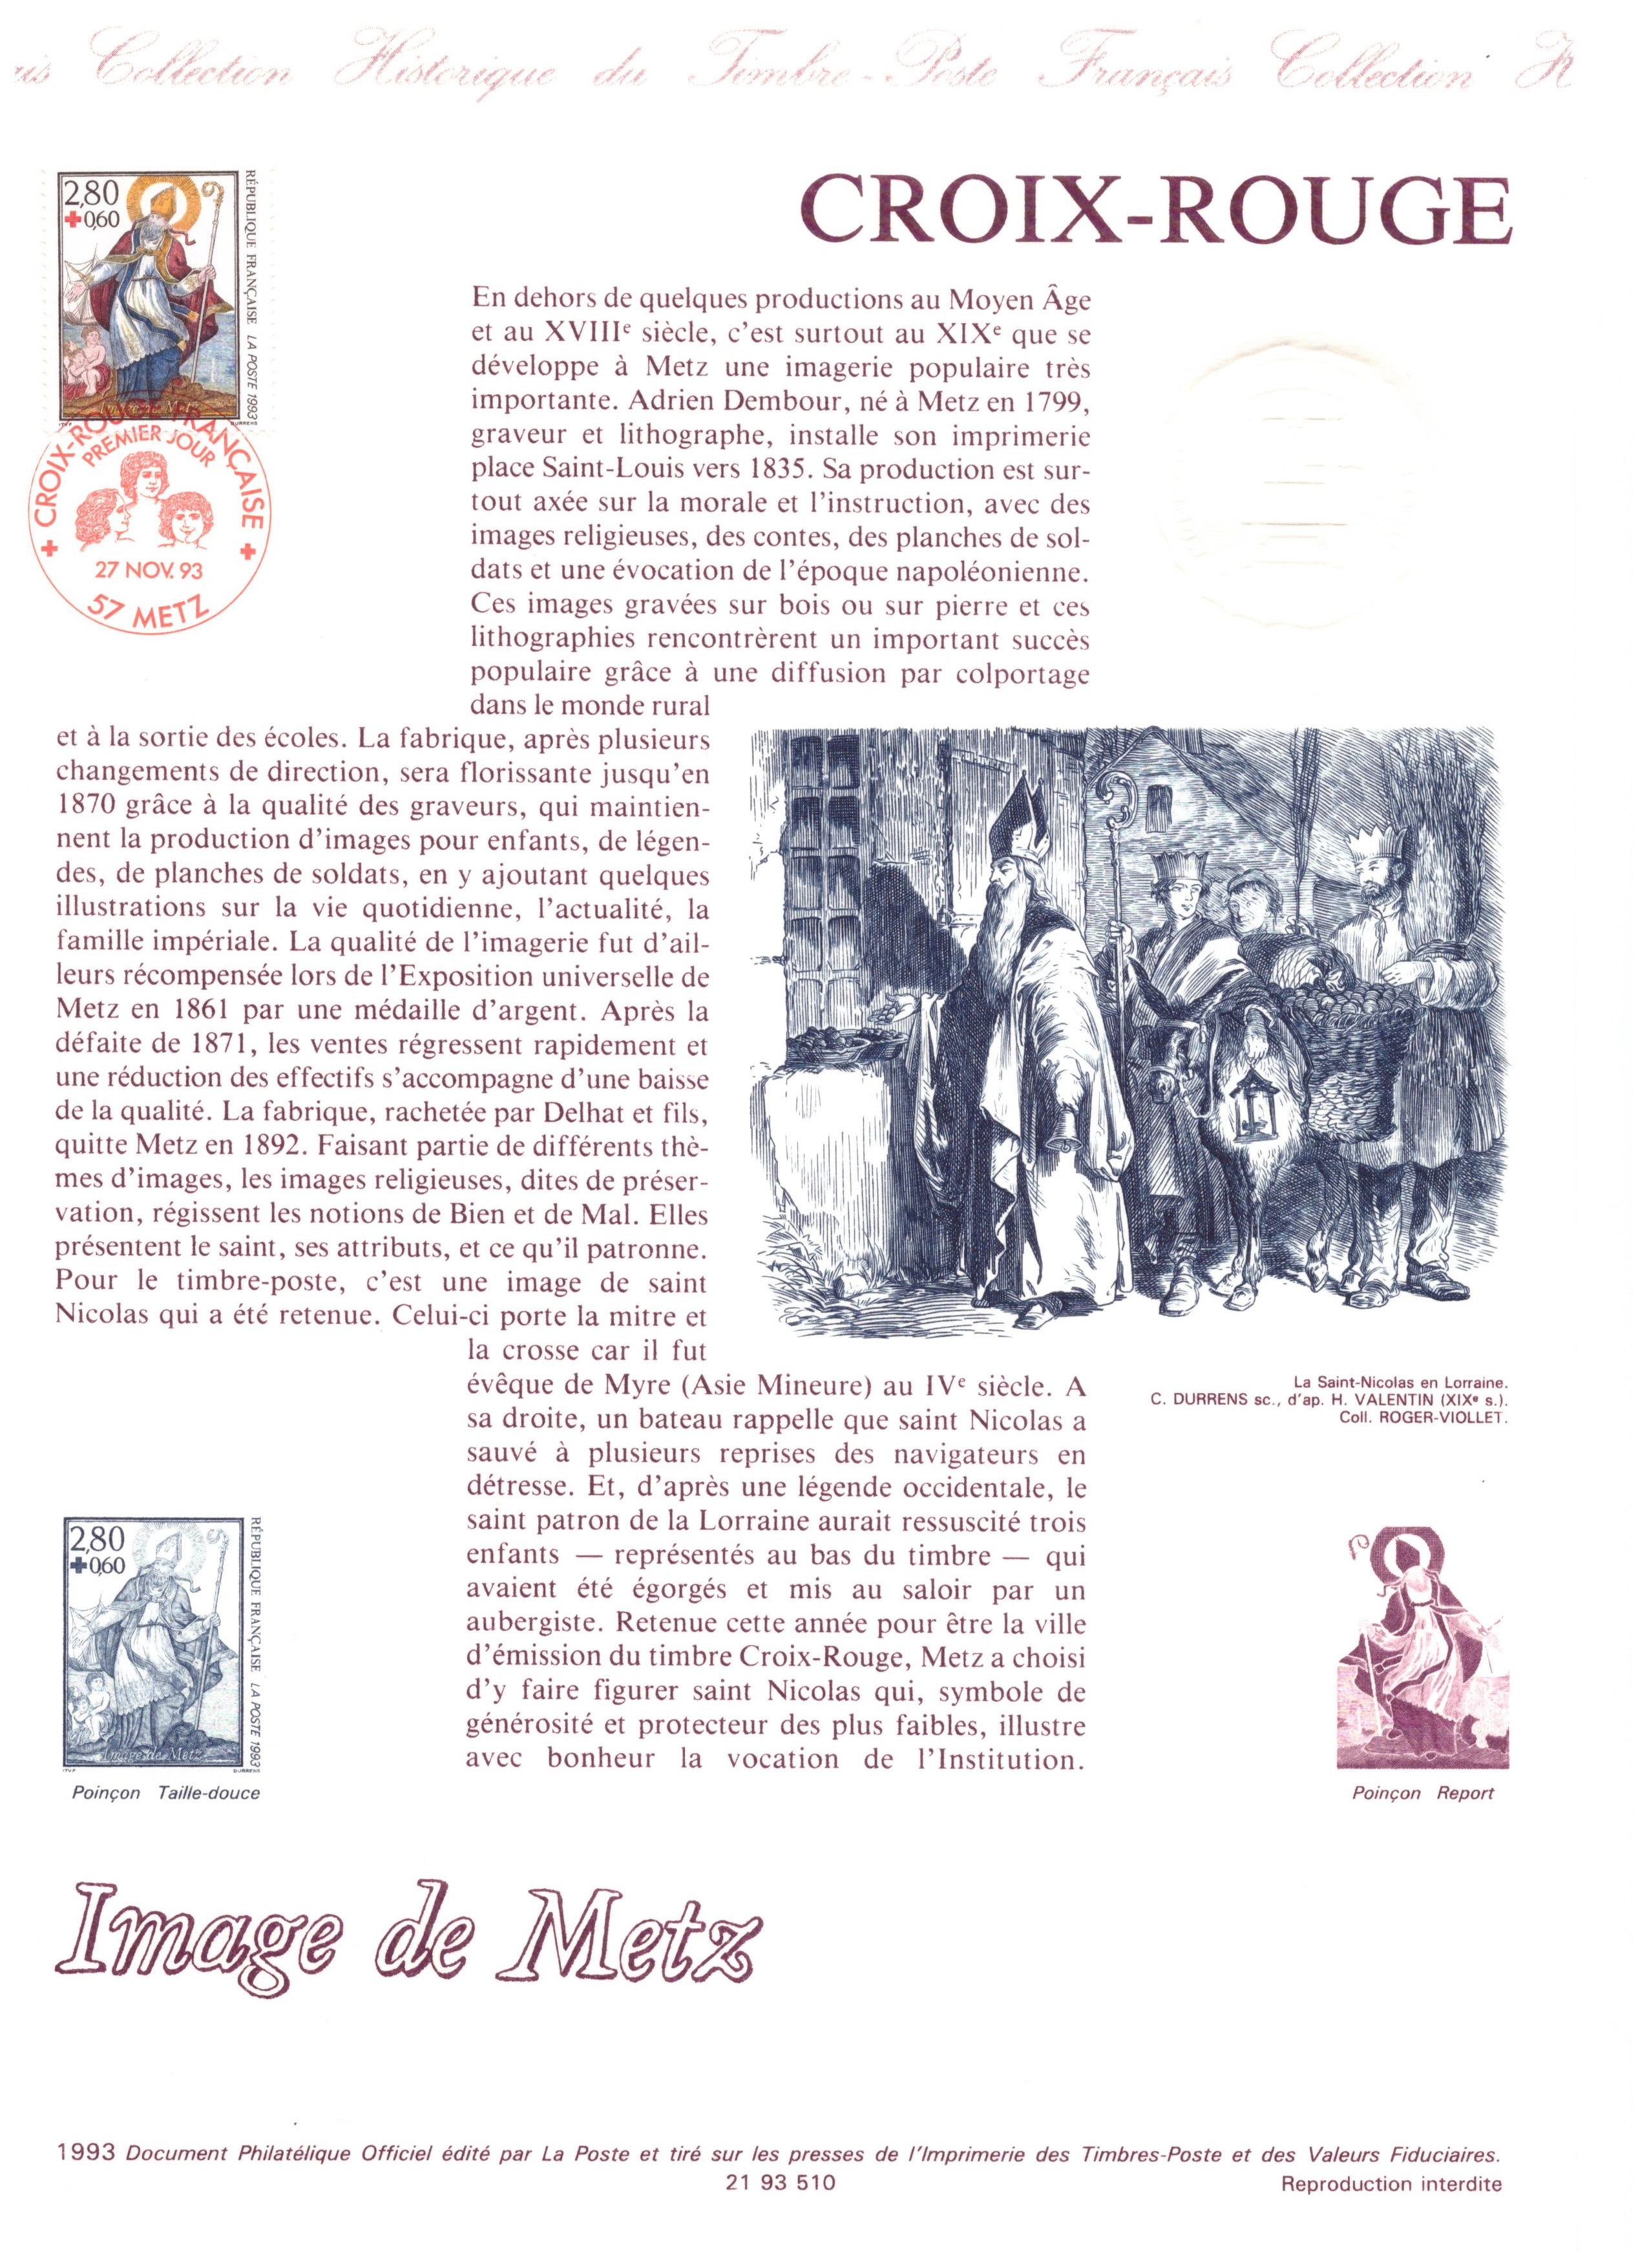 document_philatelique_officiel_croix_rouge_1993.jpg